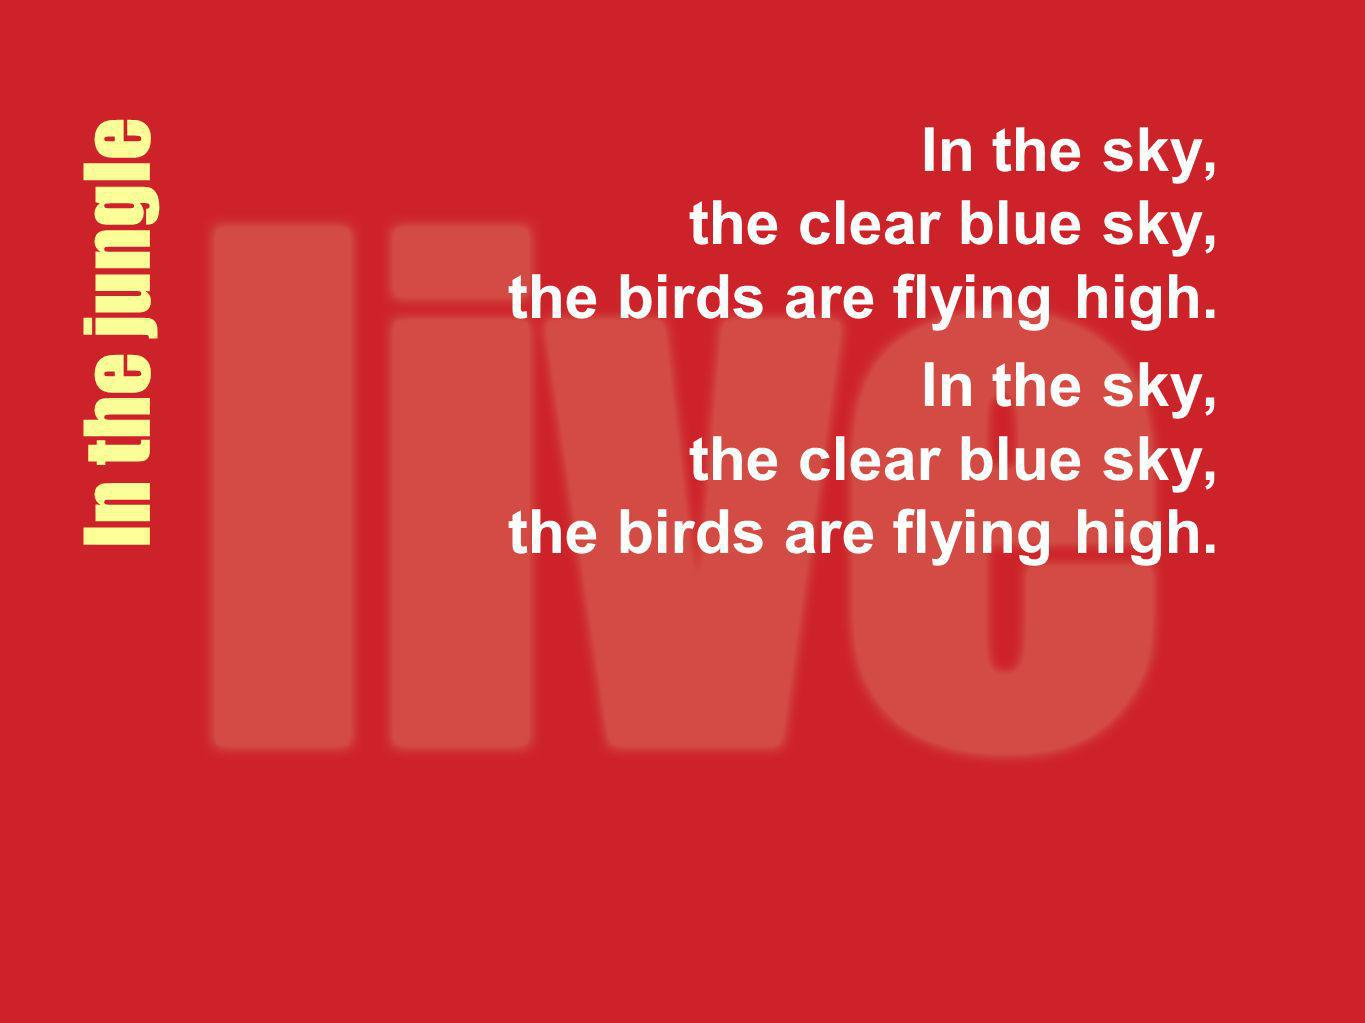 In the sky, the clear blue sky, the birds are flying high.